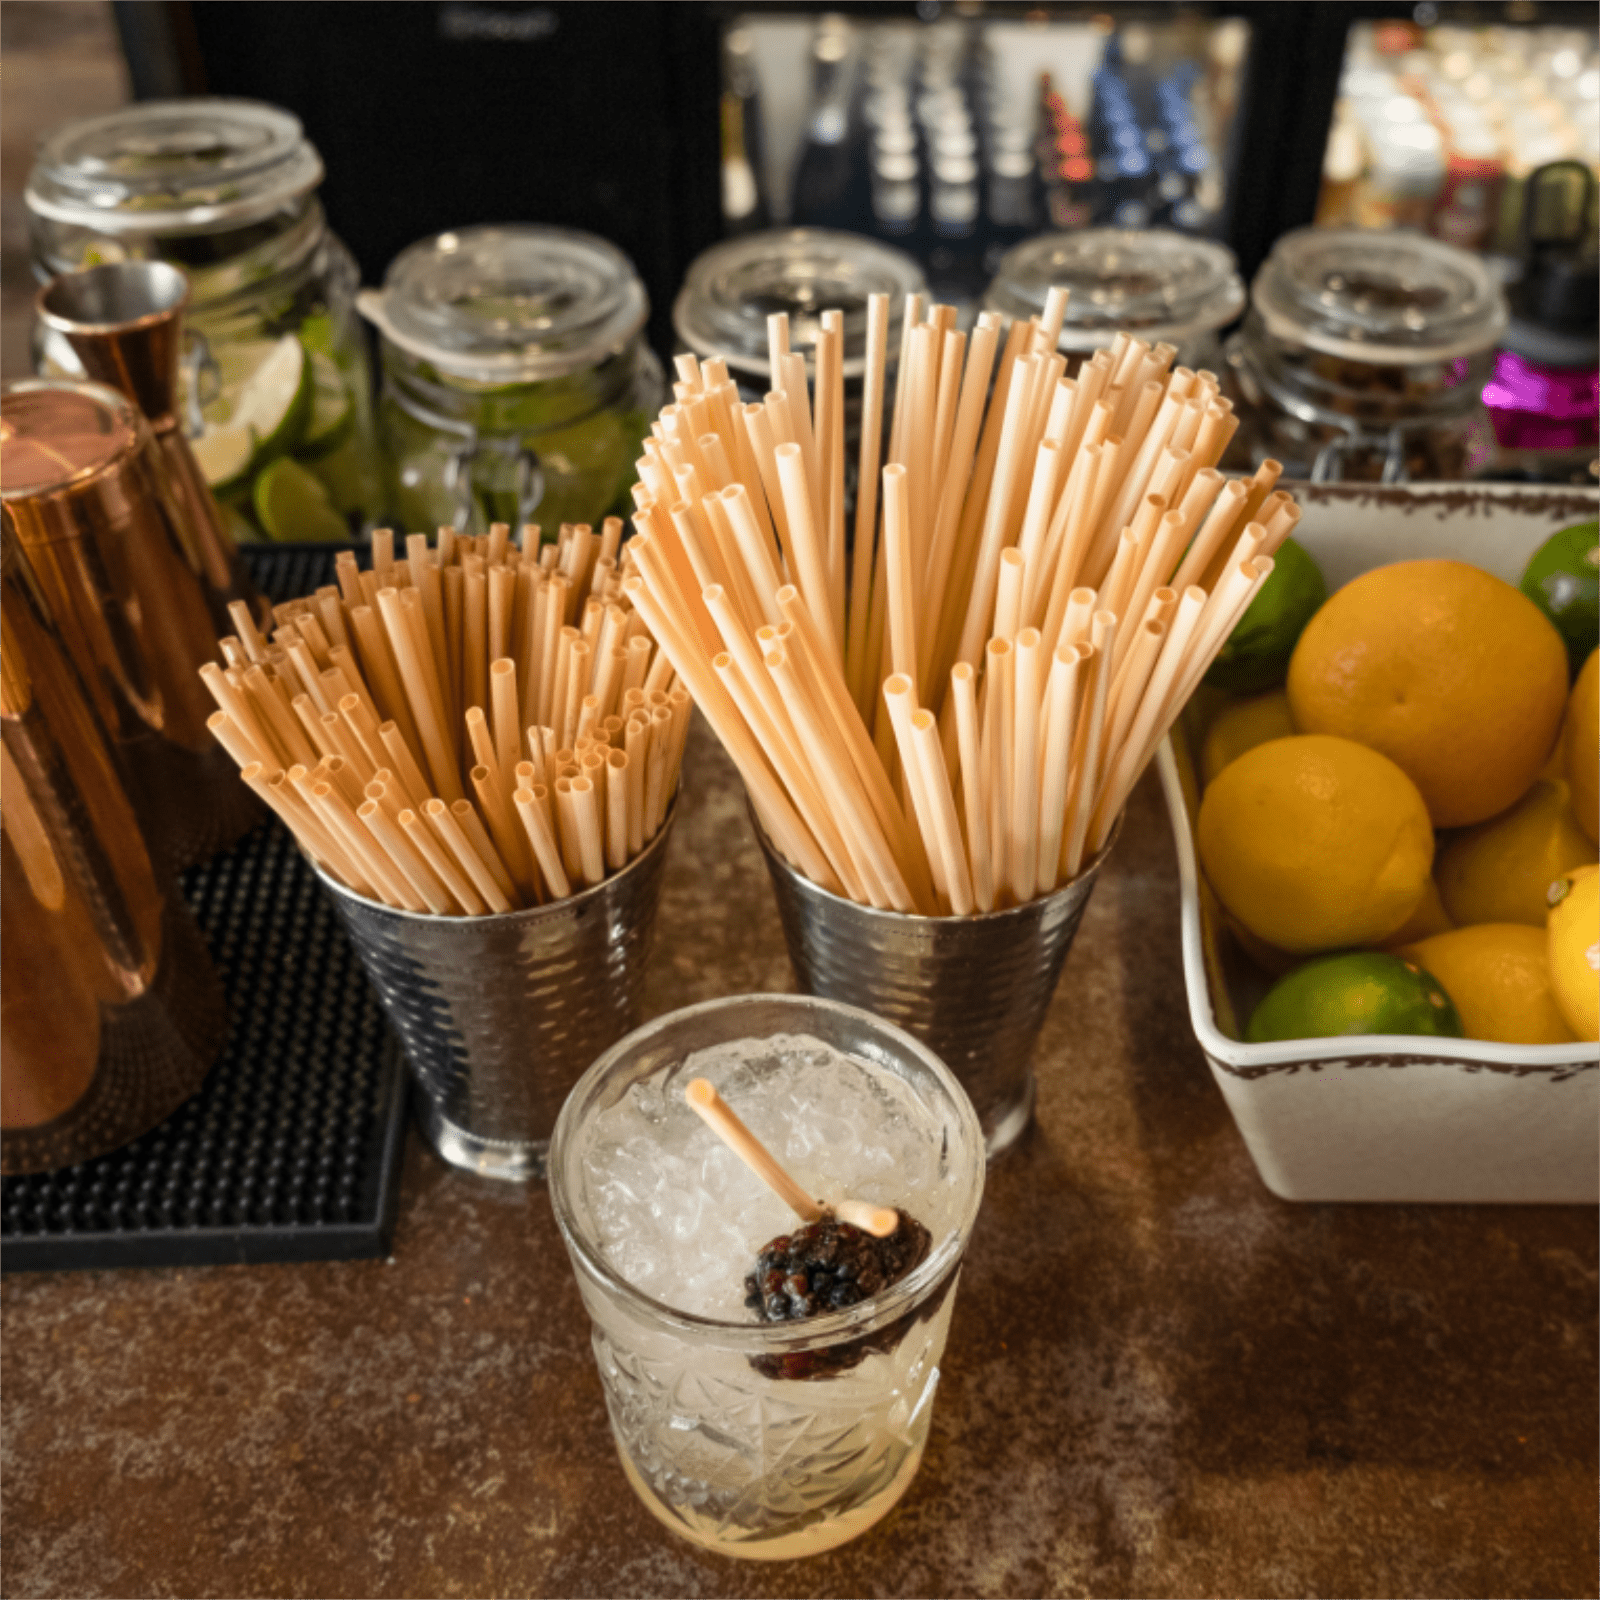 Holy City Straw Company Tall and Cocktail Straws in a straw holder at Bar with Drink